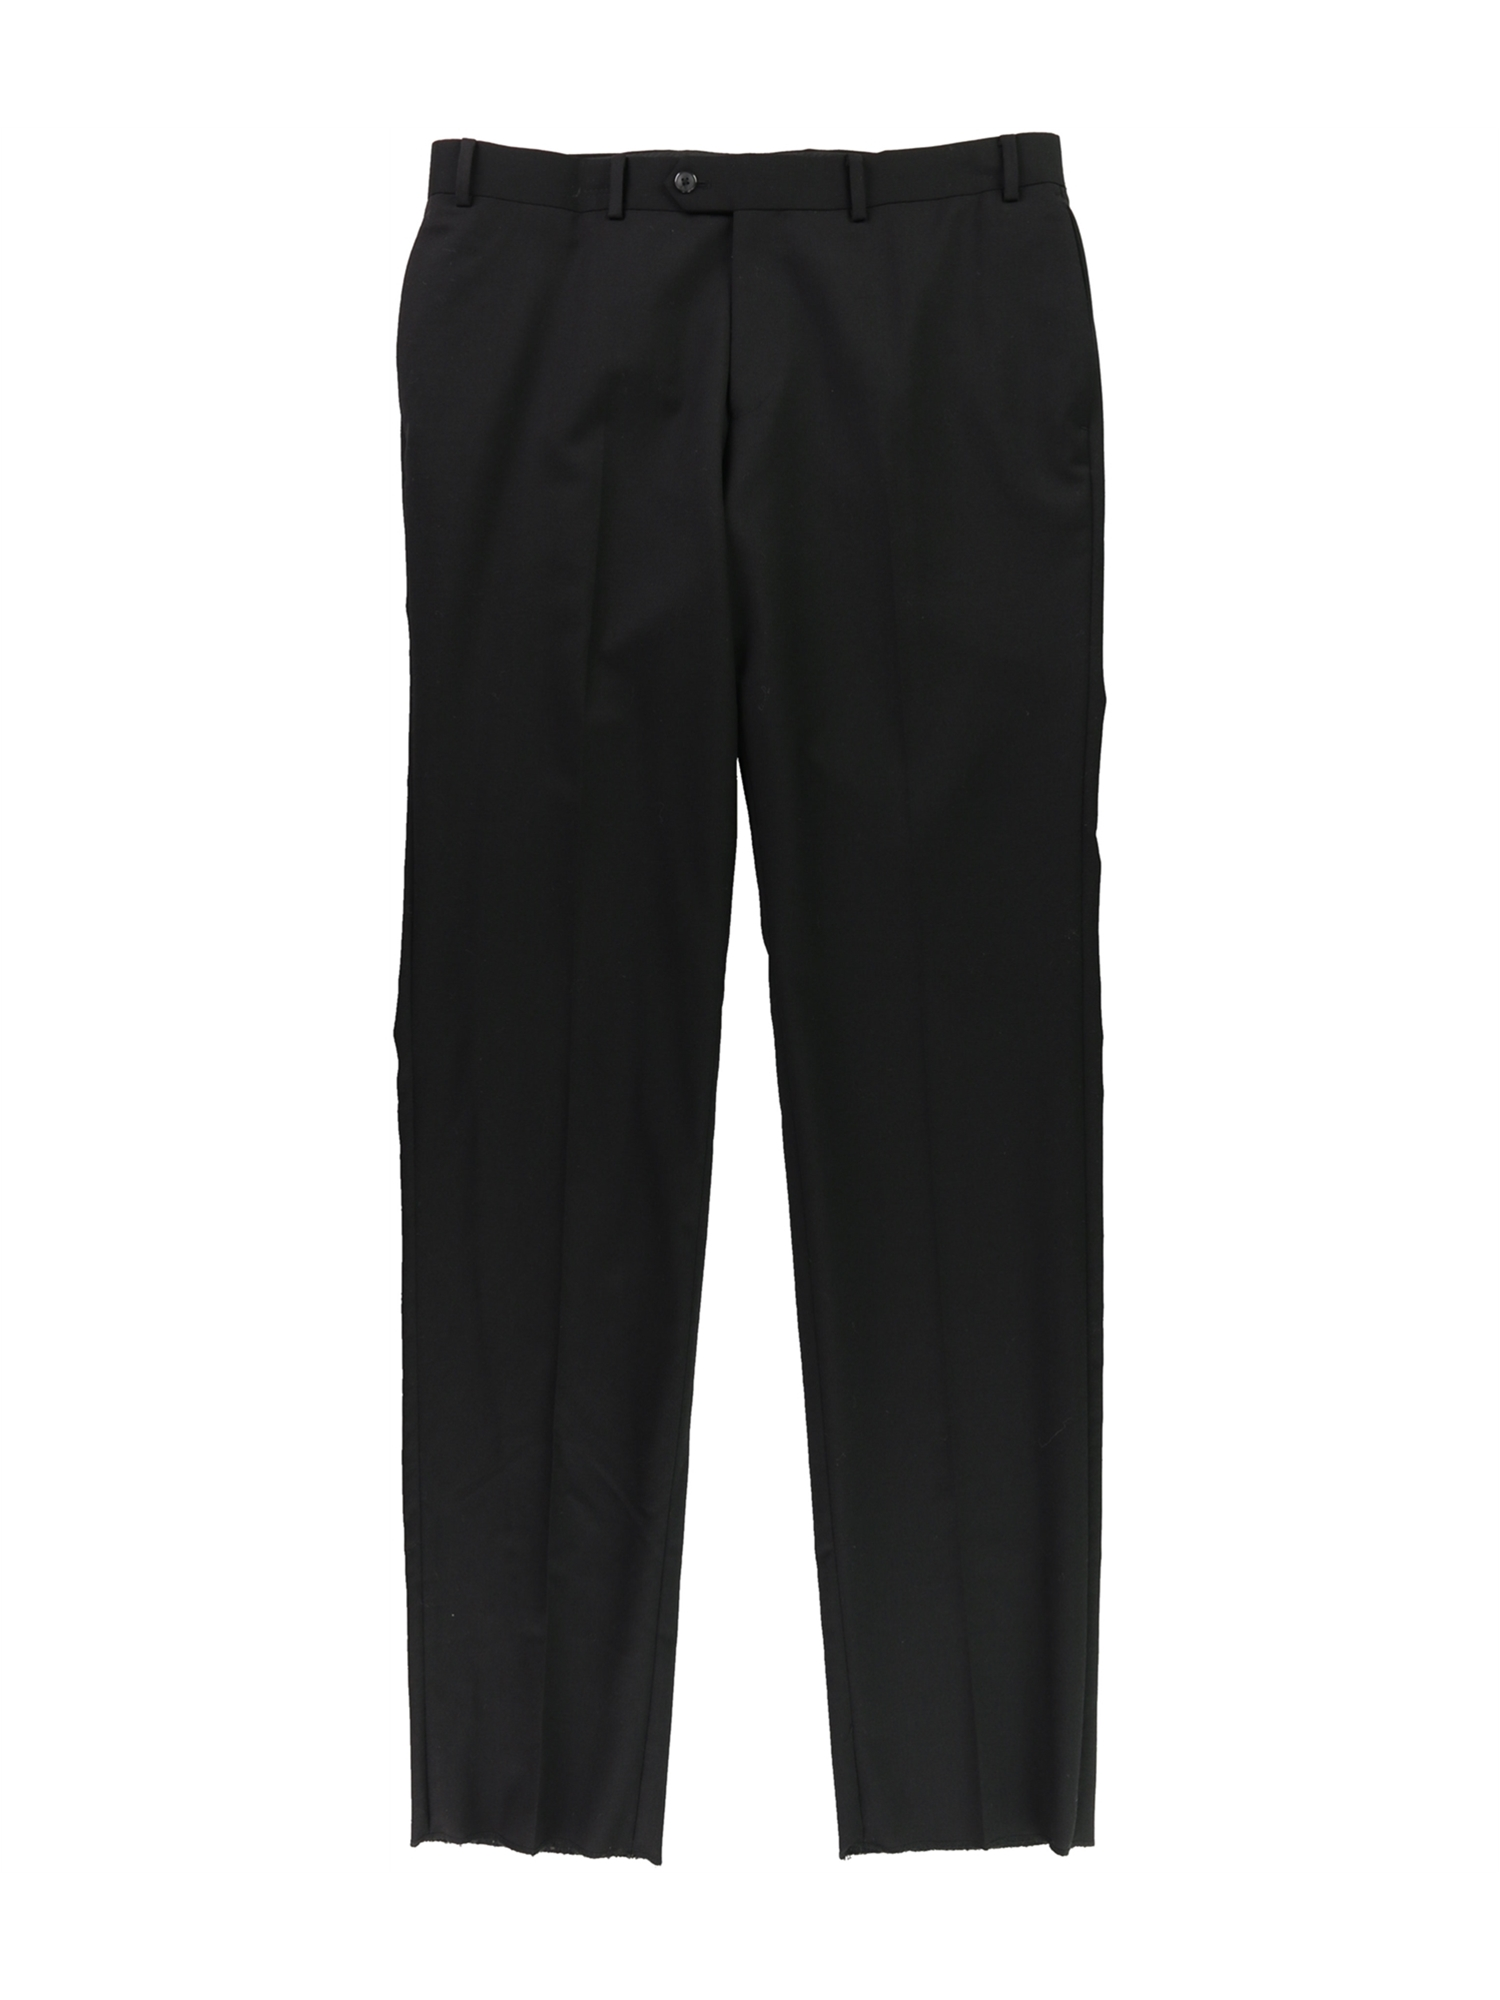 bar III Mens Unfinish Hem Dress Slacks black 35x38